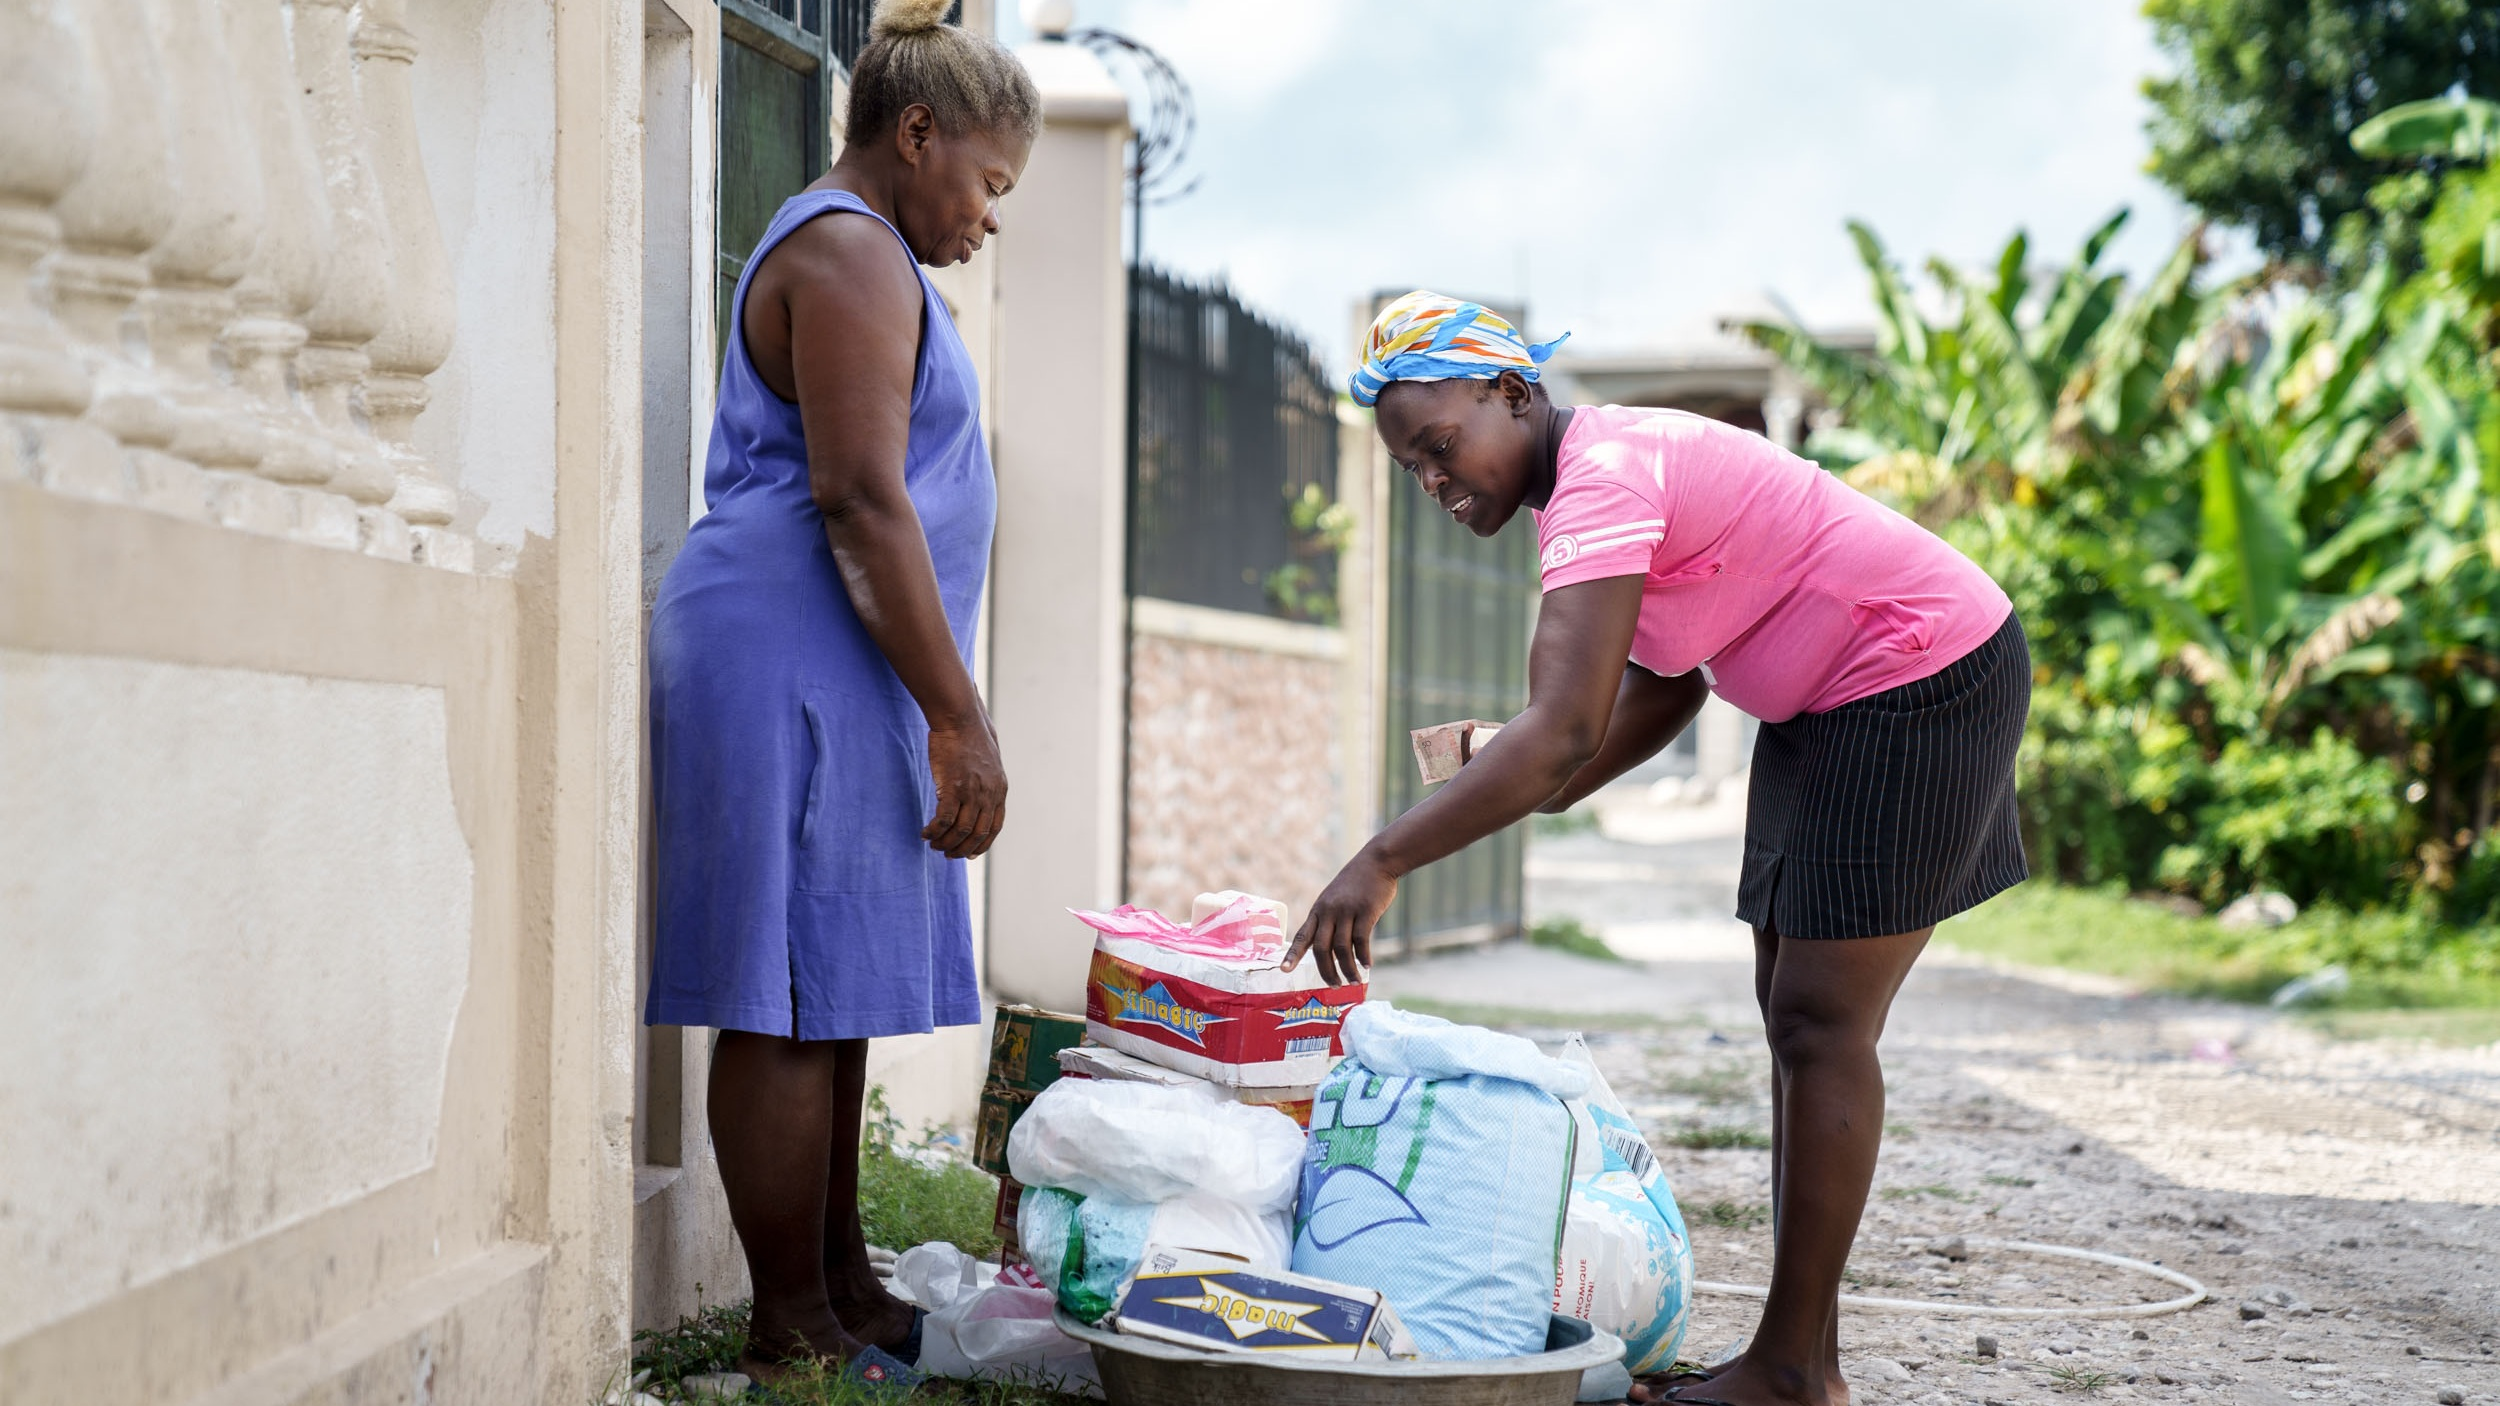 Parents who participate in our small business training program receive capital to start generating some income. Here, a mother is selling laundry supplies.   Photo by GBP Creative. © 2019 Shot In The Dark Media.